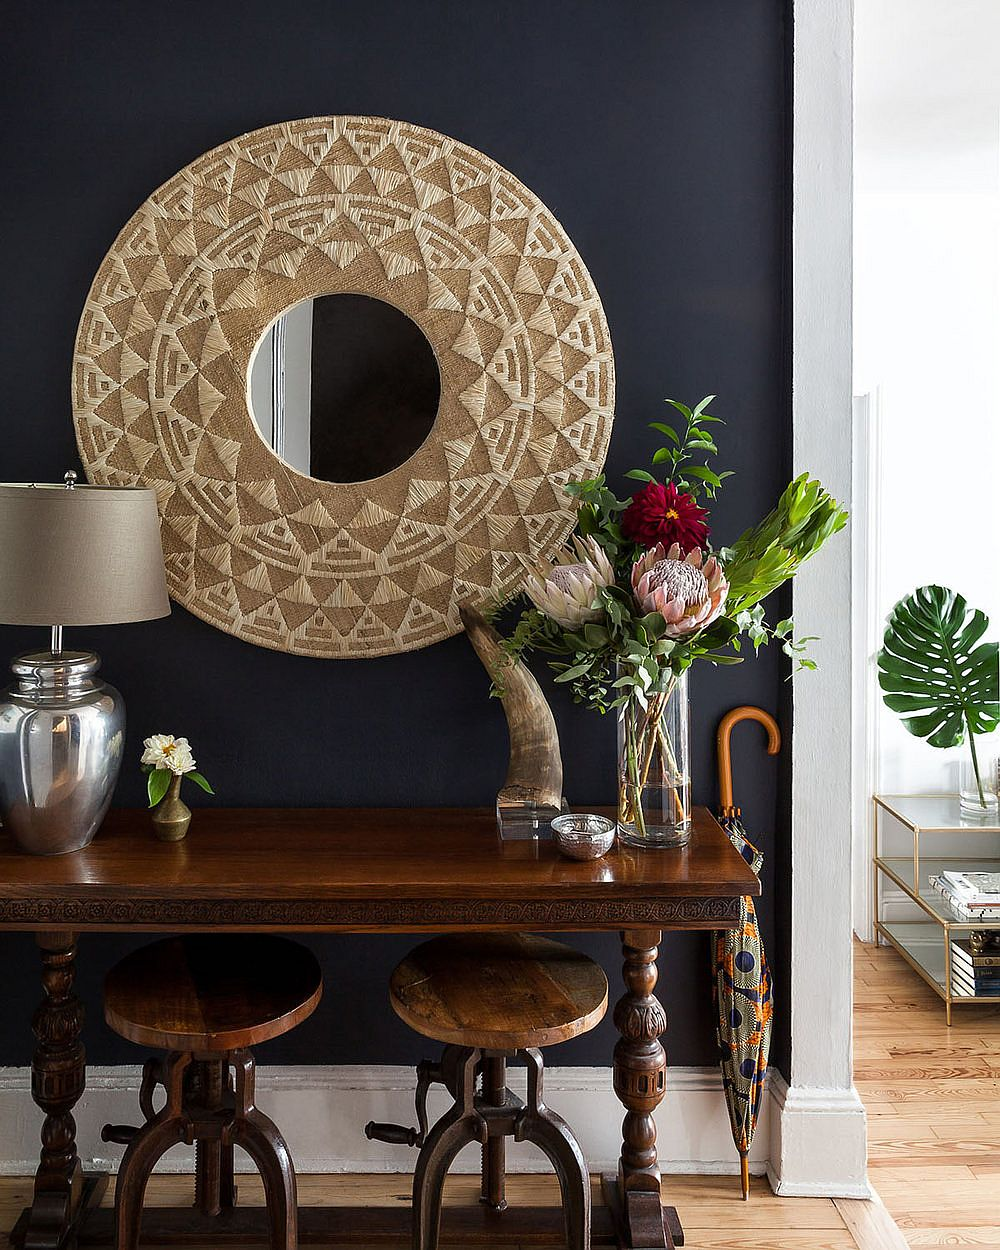 Selected vintage pieces used to decoratemodern New York home